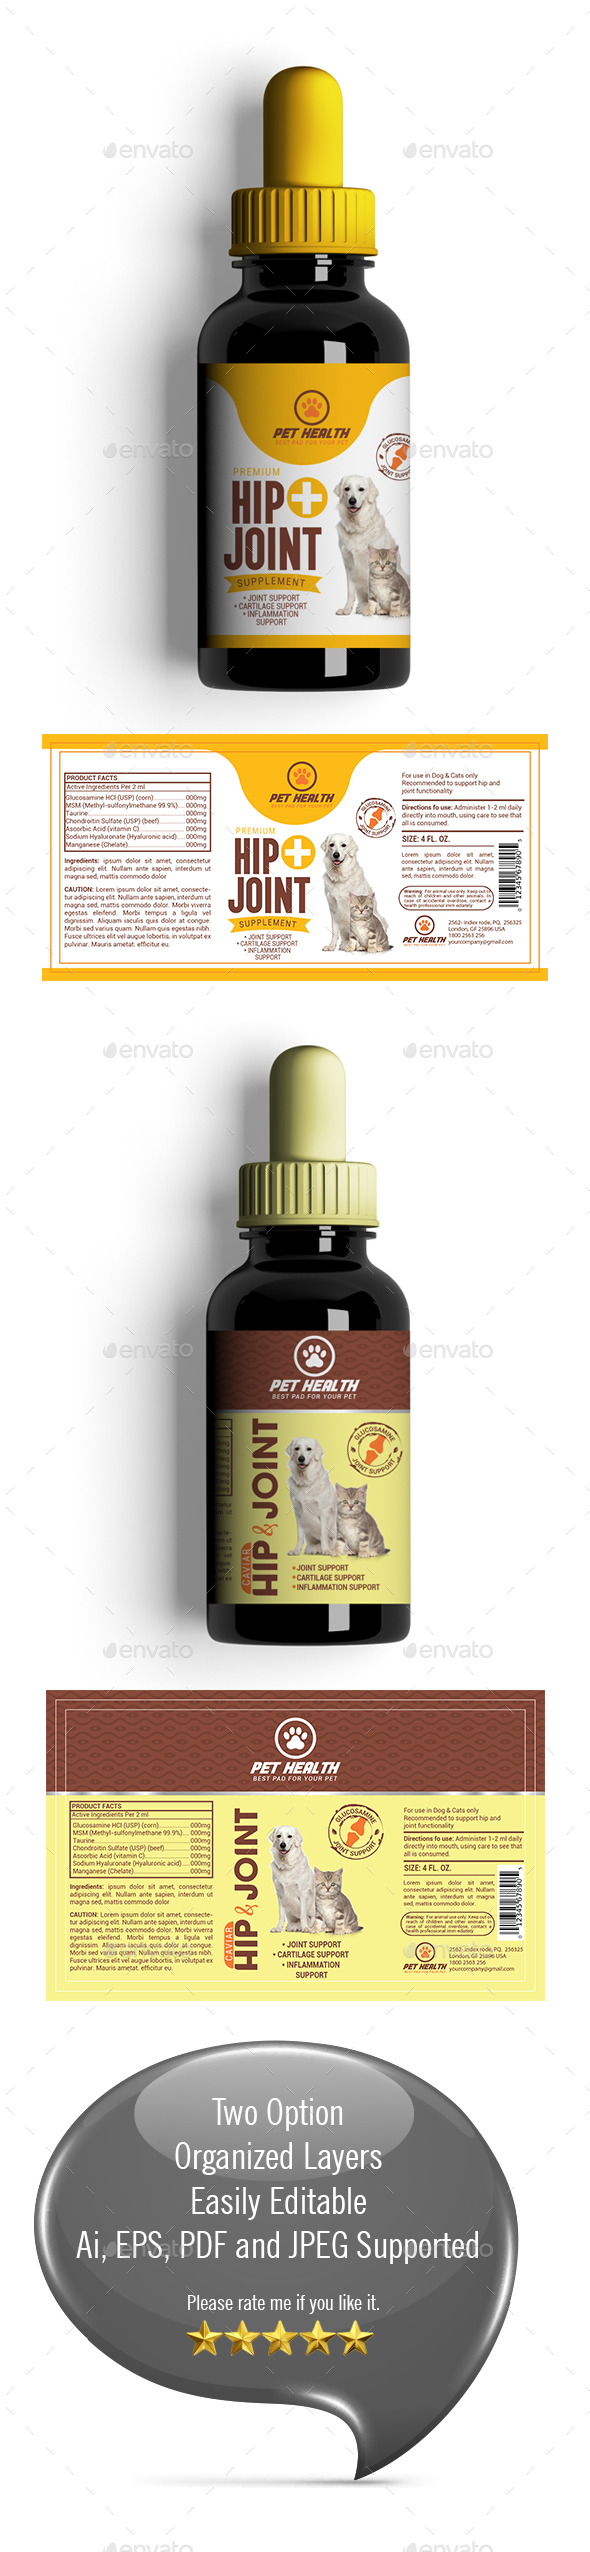 Dog Hip & Joint Supplement Label-01 - Packaging Print Templates